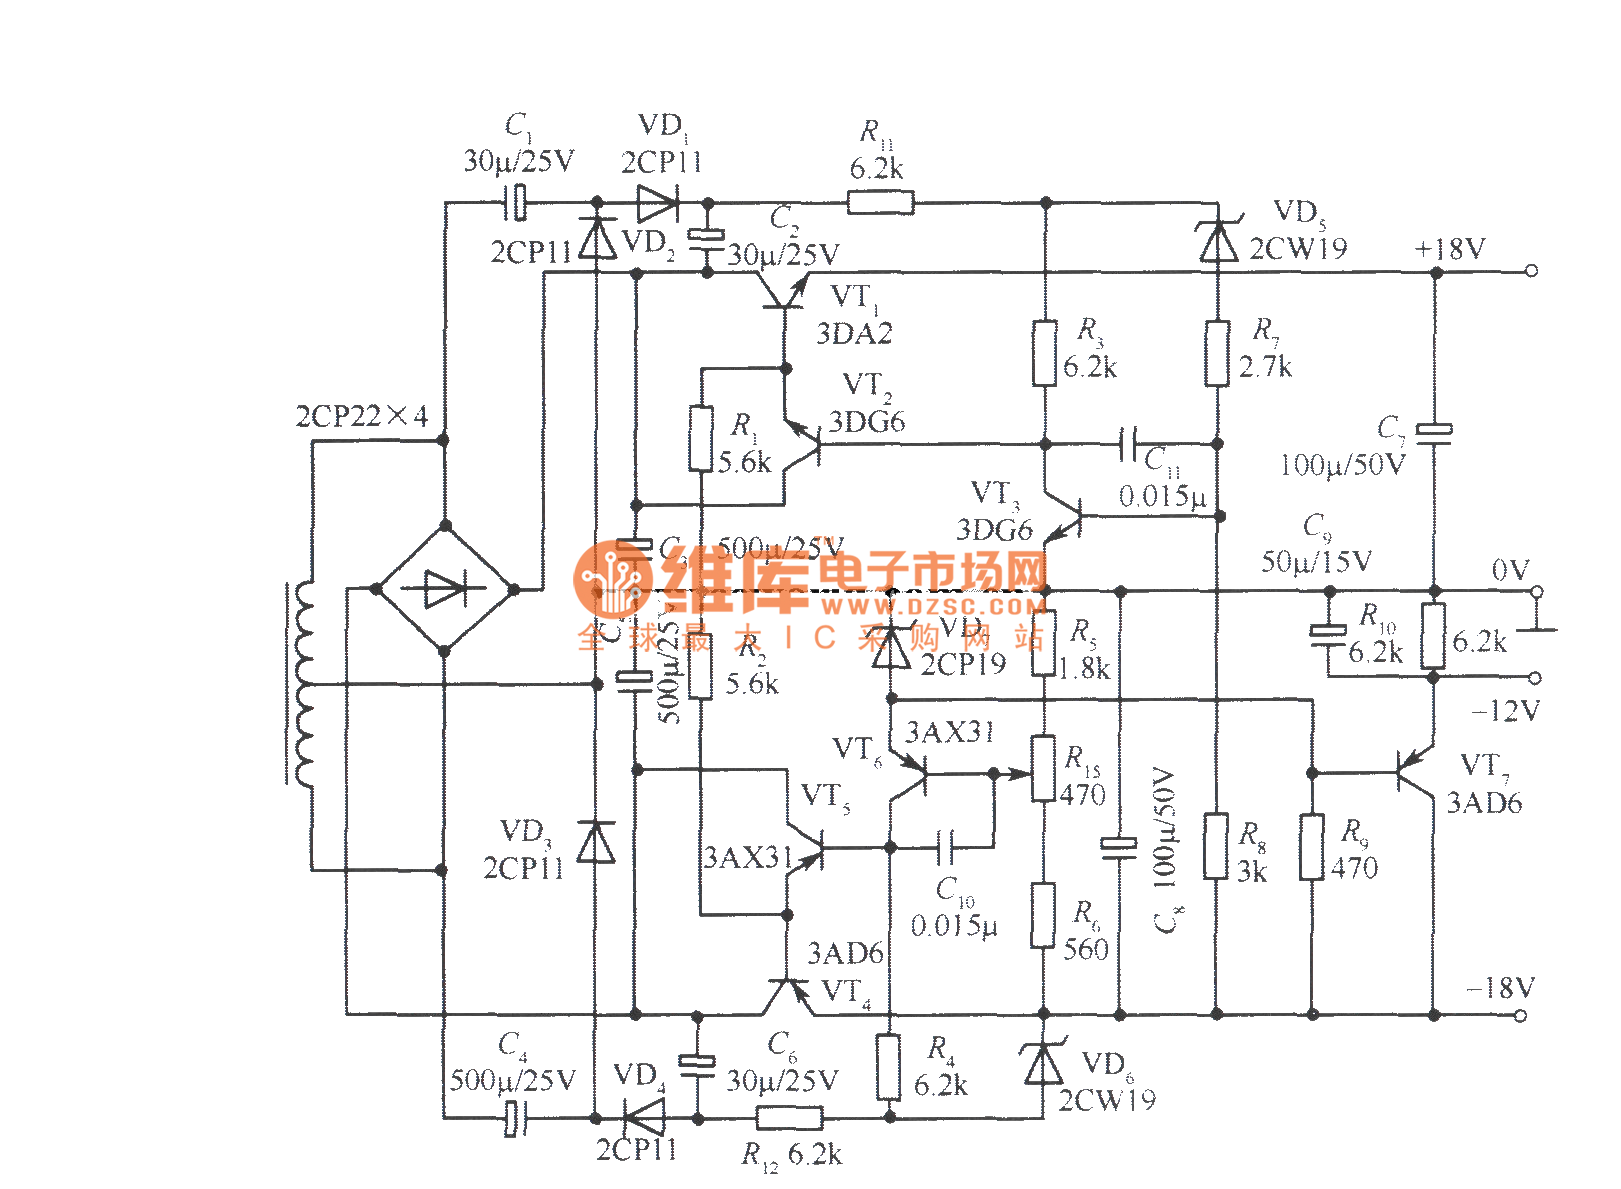 18v bipolar regulated voltage power supply circuit With 00 authorlynne keyword hardware circuit ultrasonic range finder